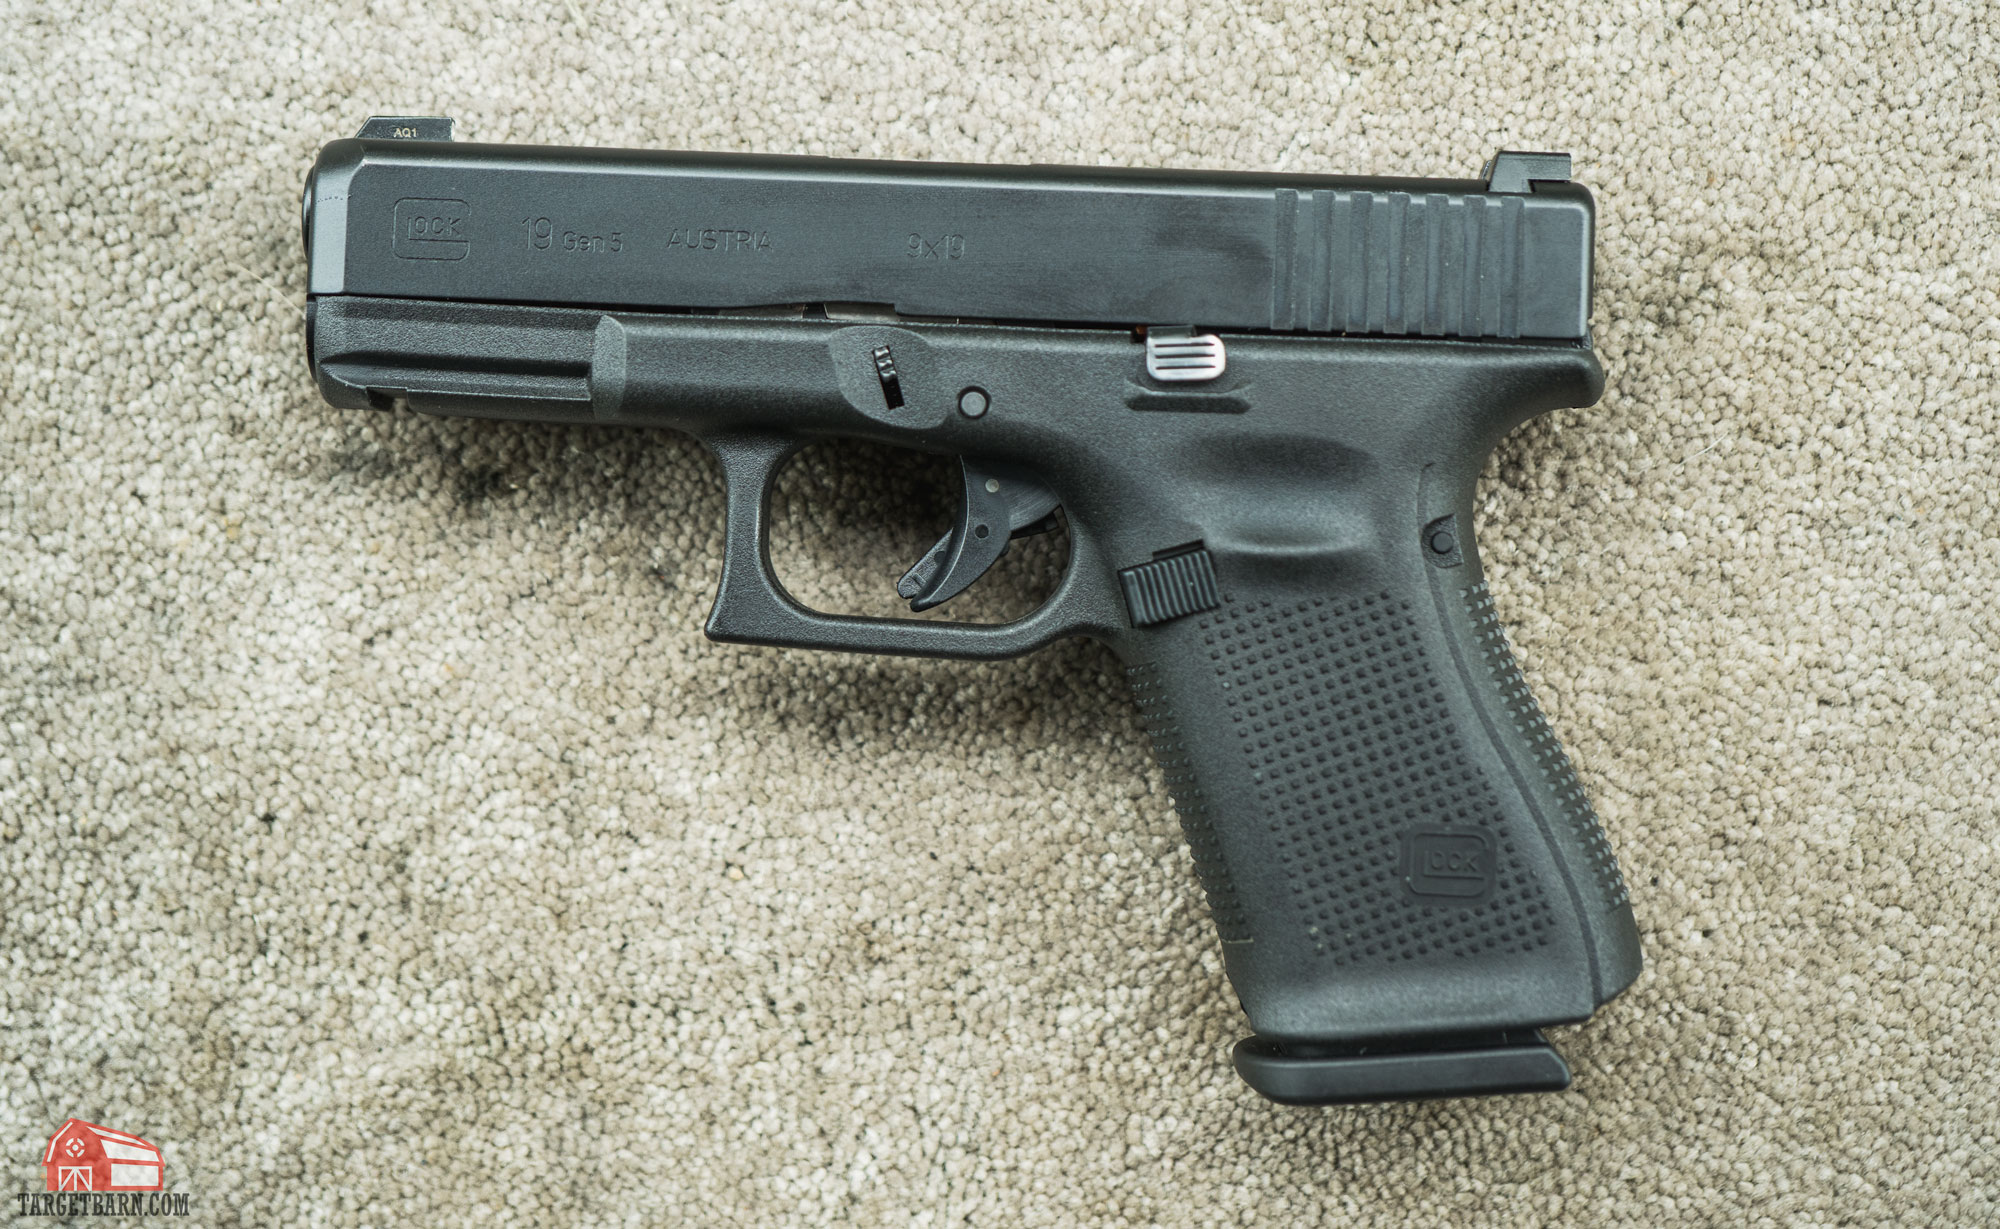 a glock 19 that would be used in the compact carry pistol division